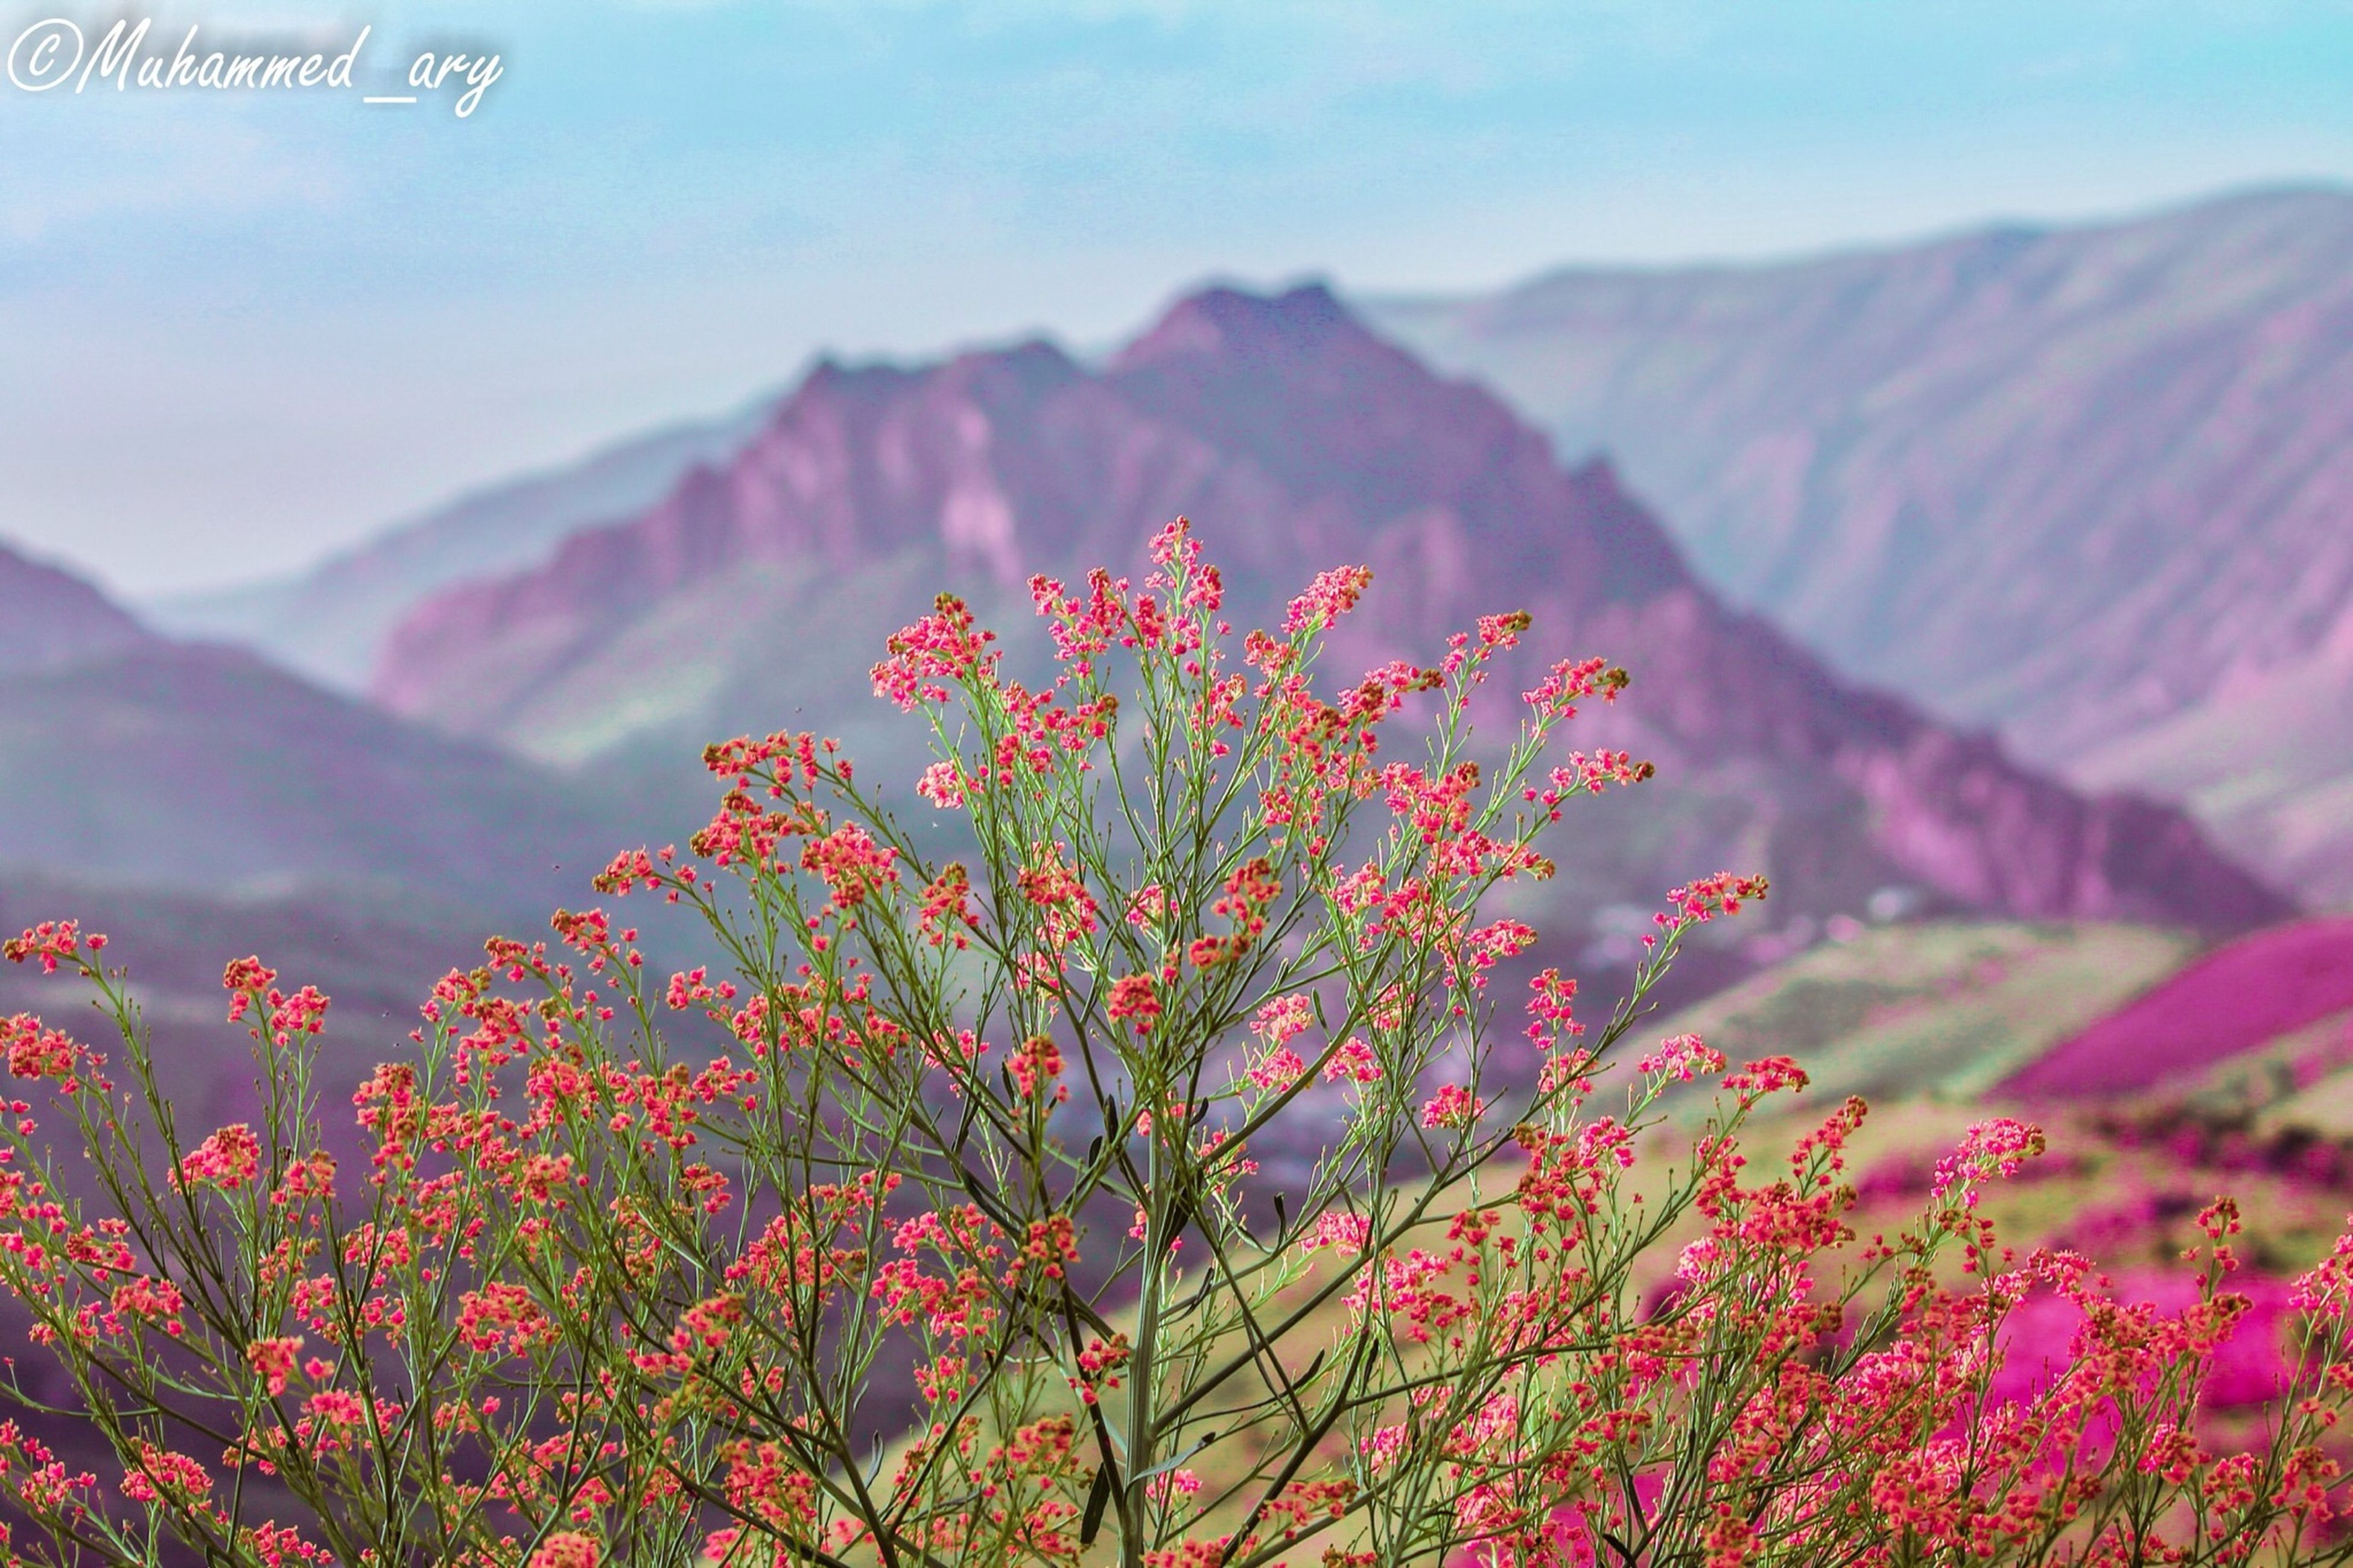 flower, beauty in nature, growth, nature, red, freshness, tree, branch, fragility, focus on foreground, tranquility, plant, close-up, scenics, pink color, outdoors, day, season, low angle view, no people